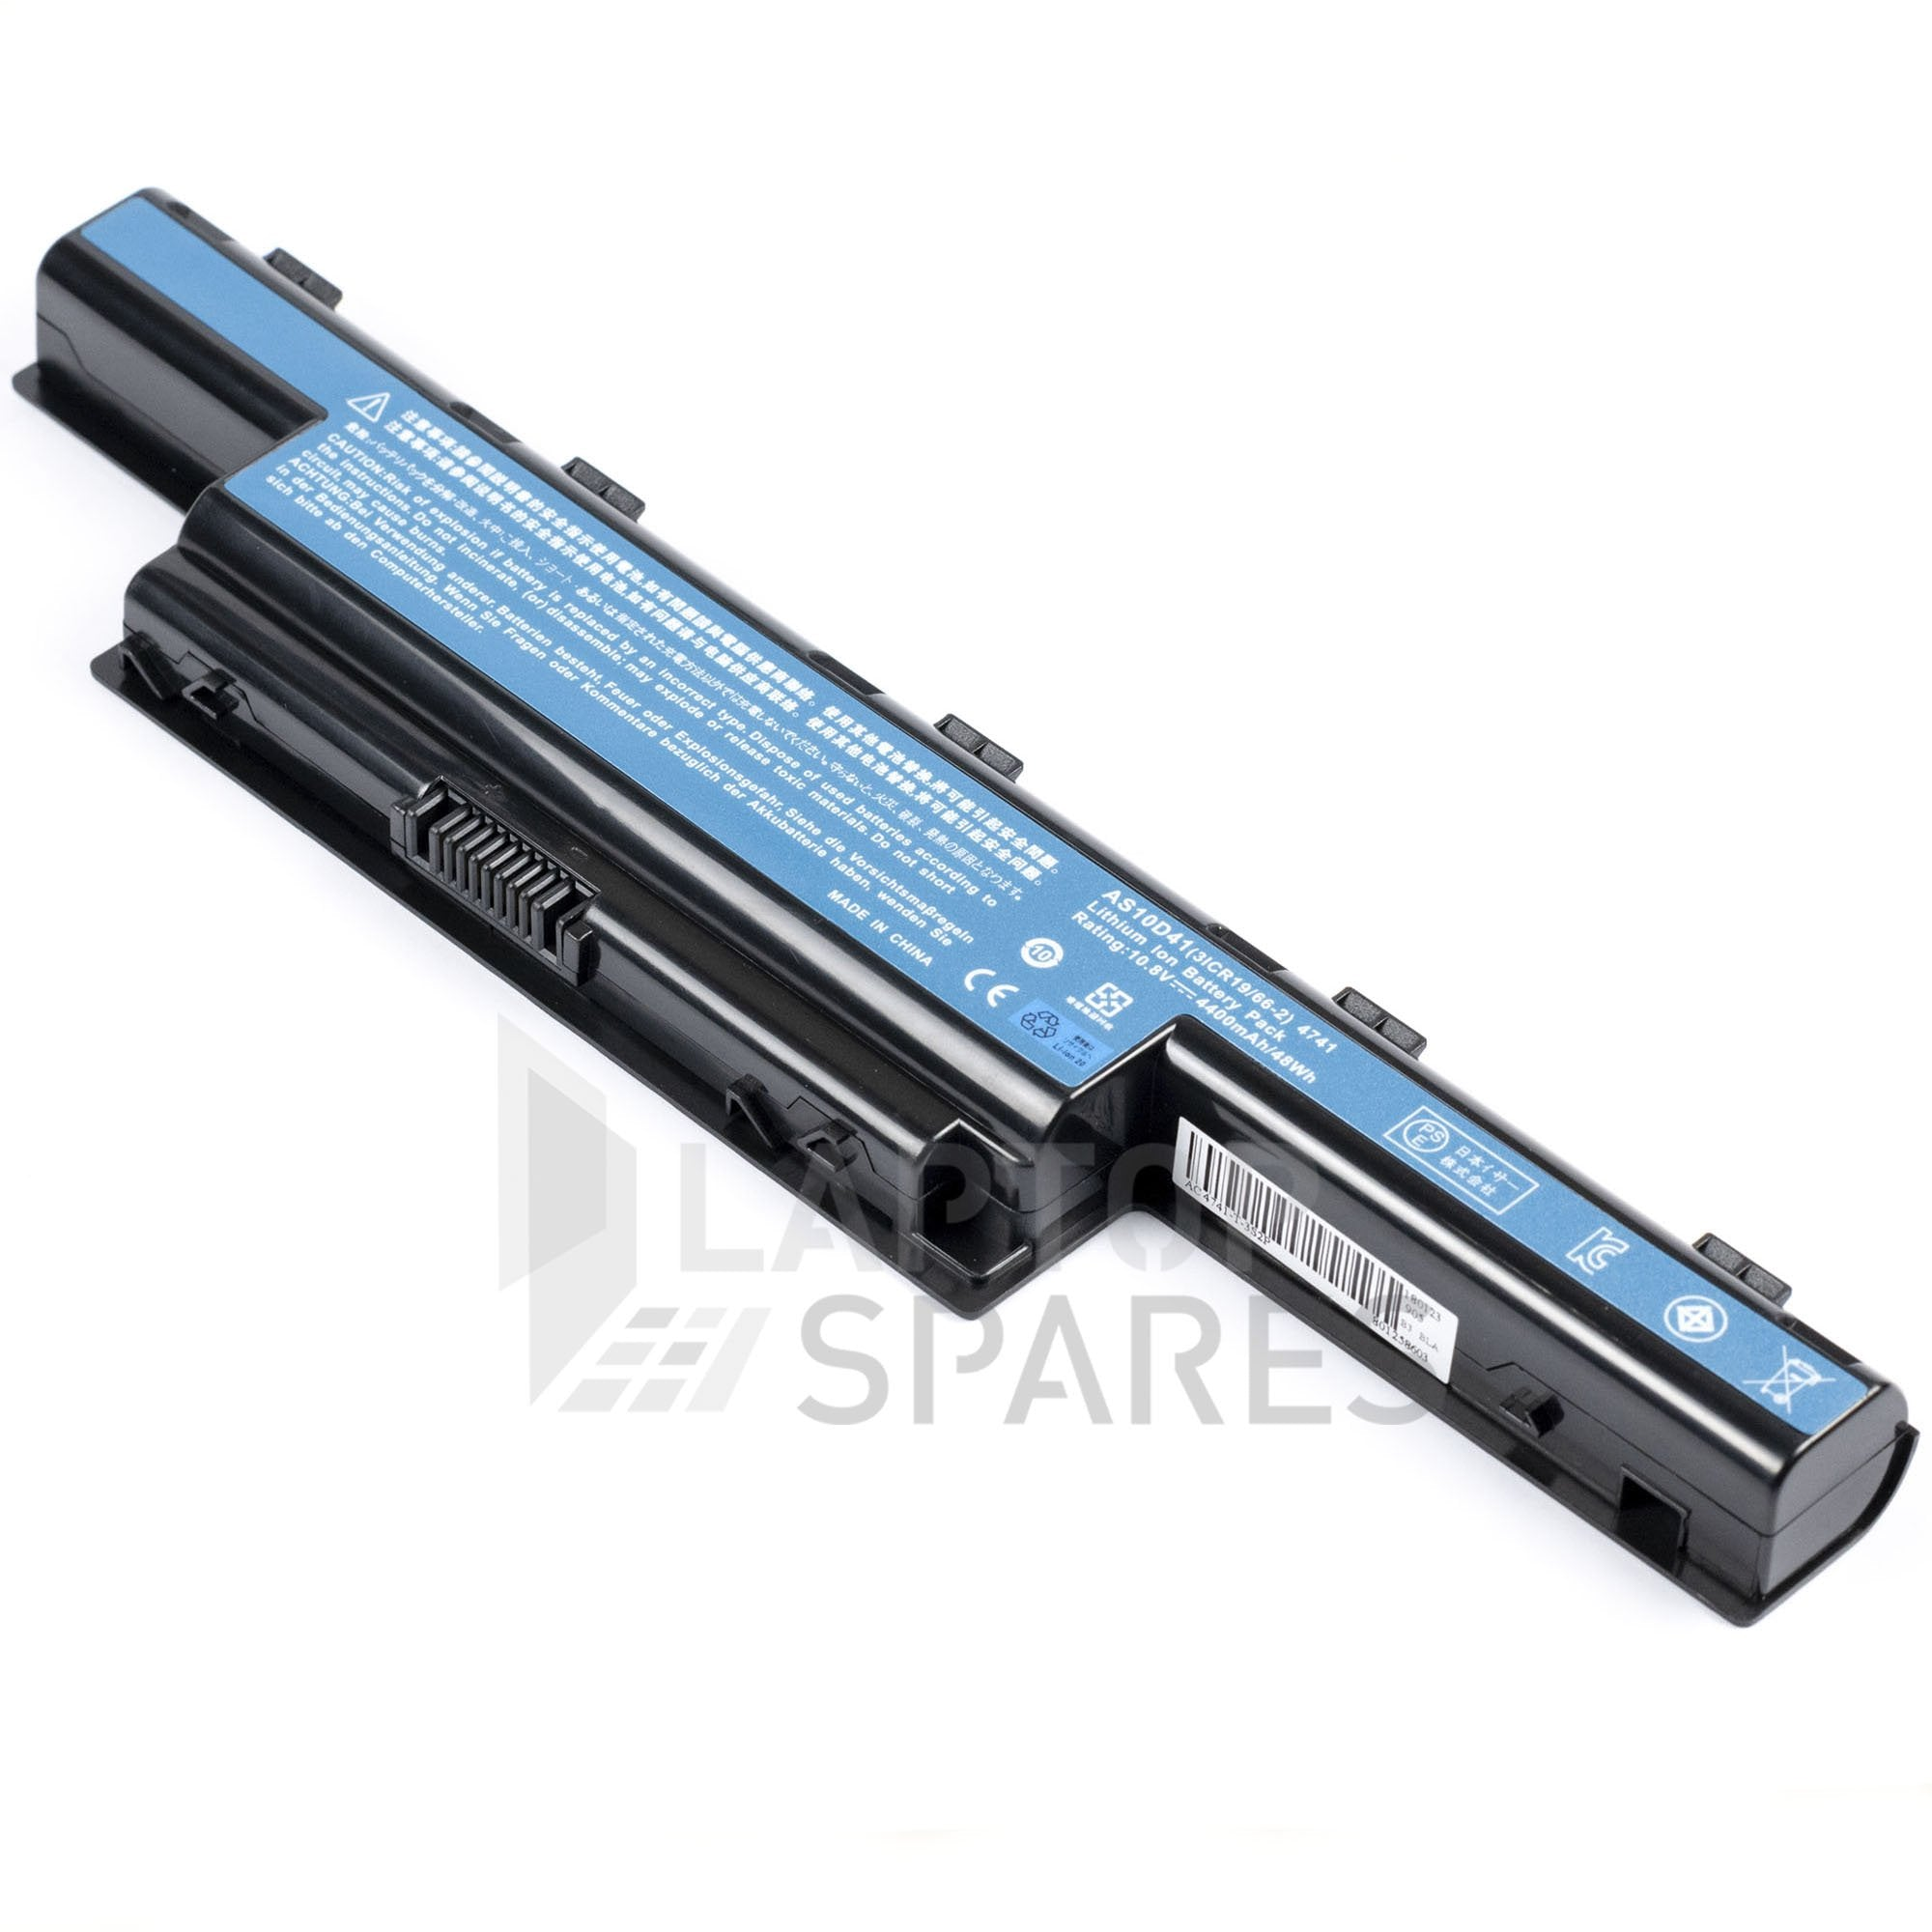 Acer TravelMate 5742 5742G 5742Z 4400mAh 6 Cell Battery